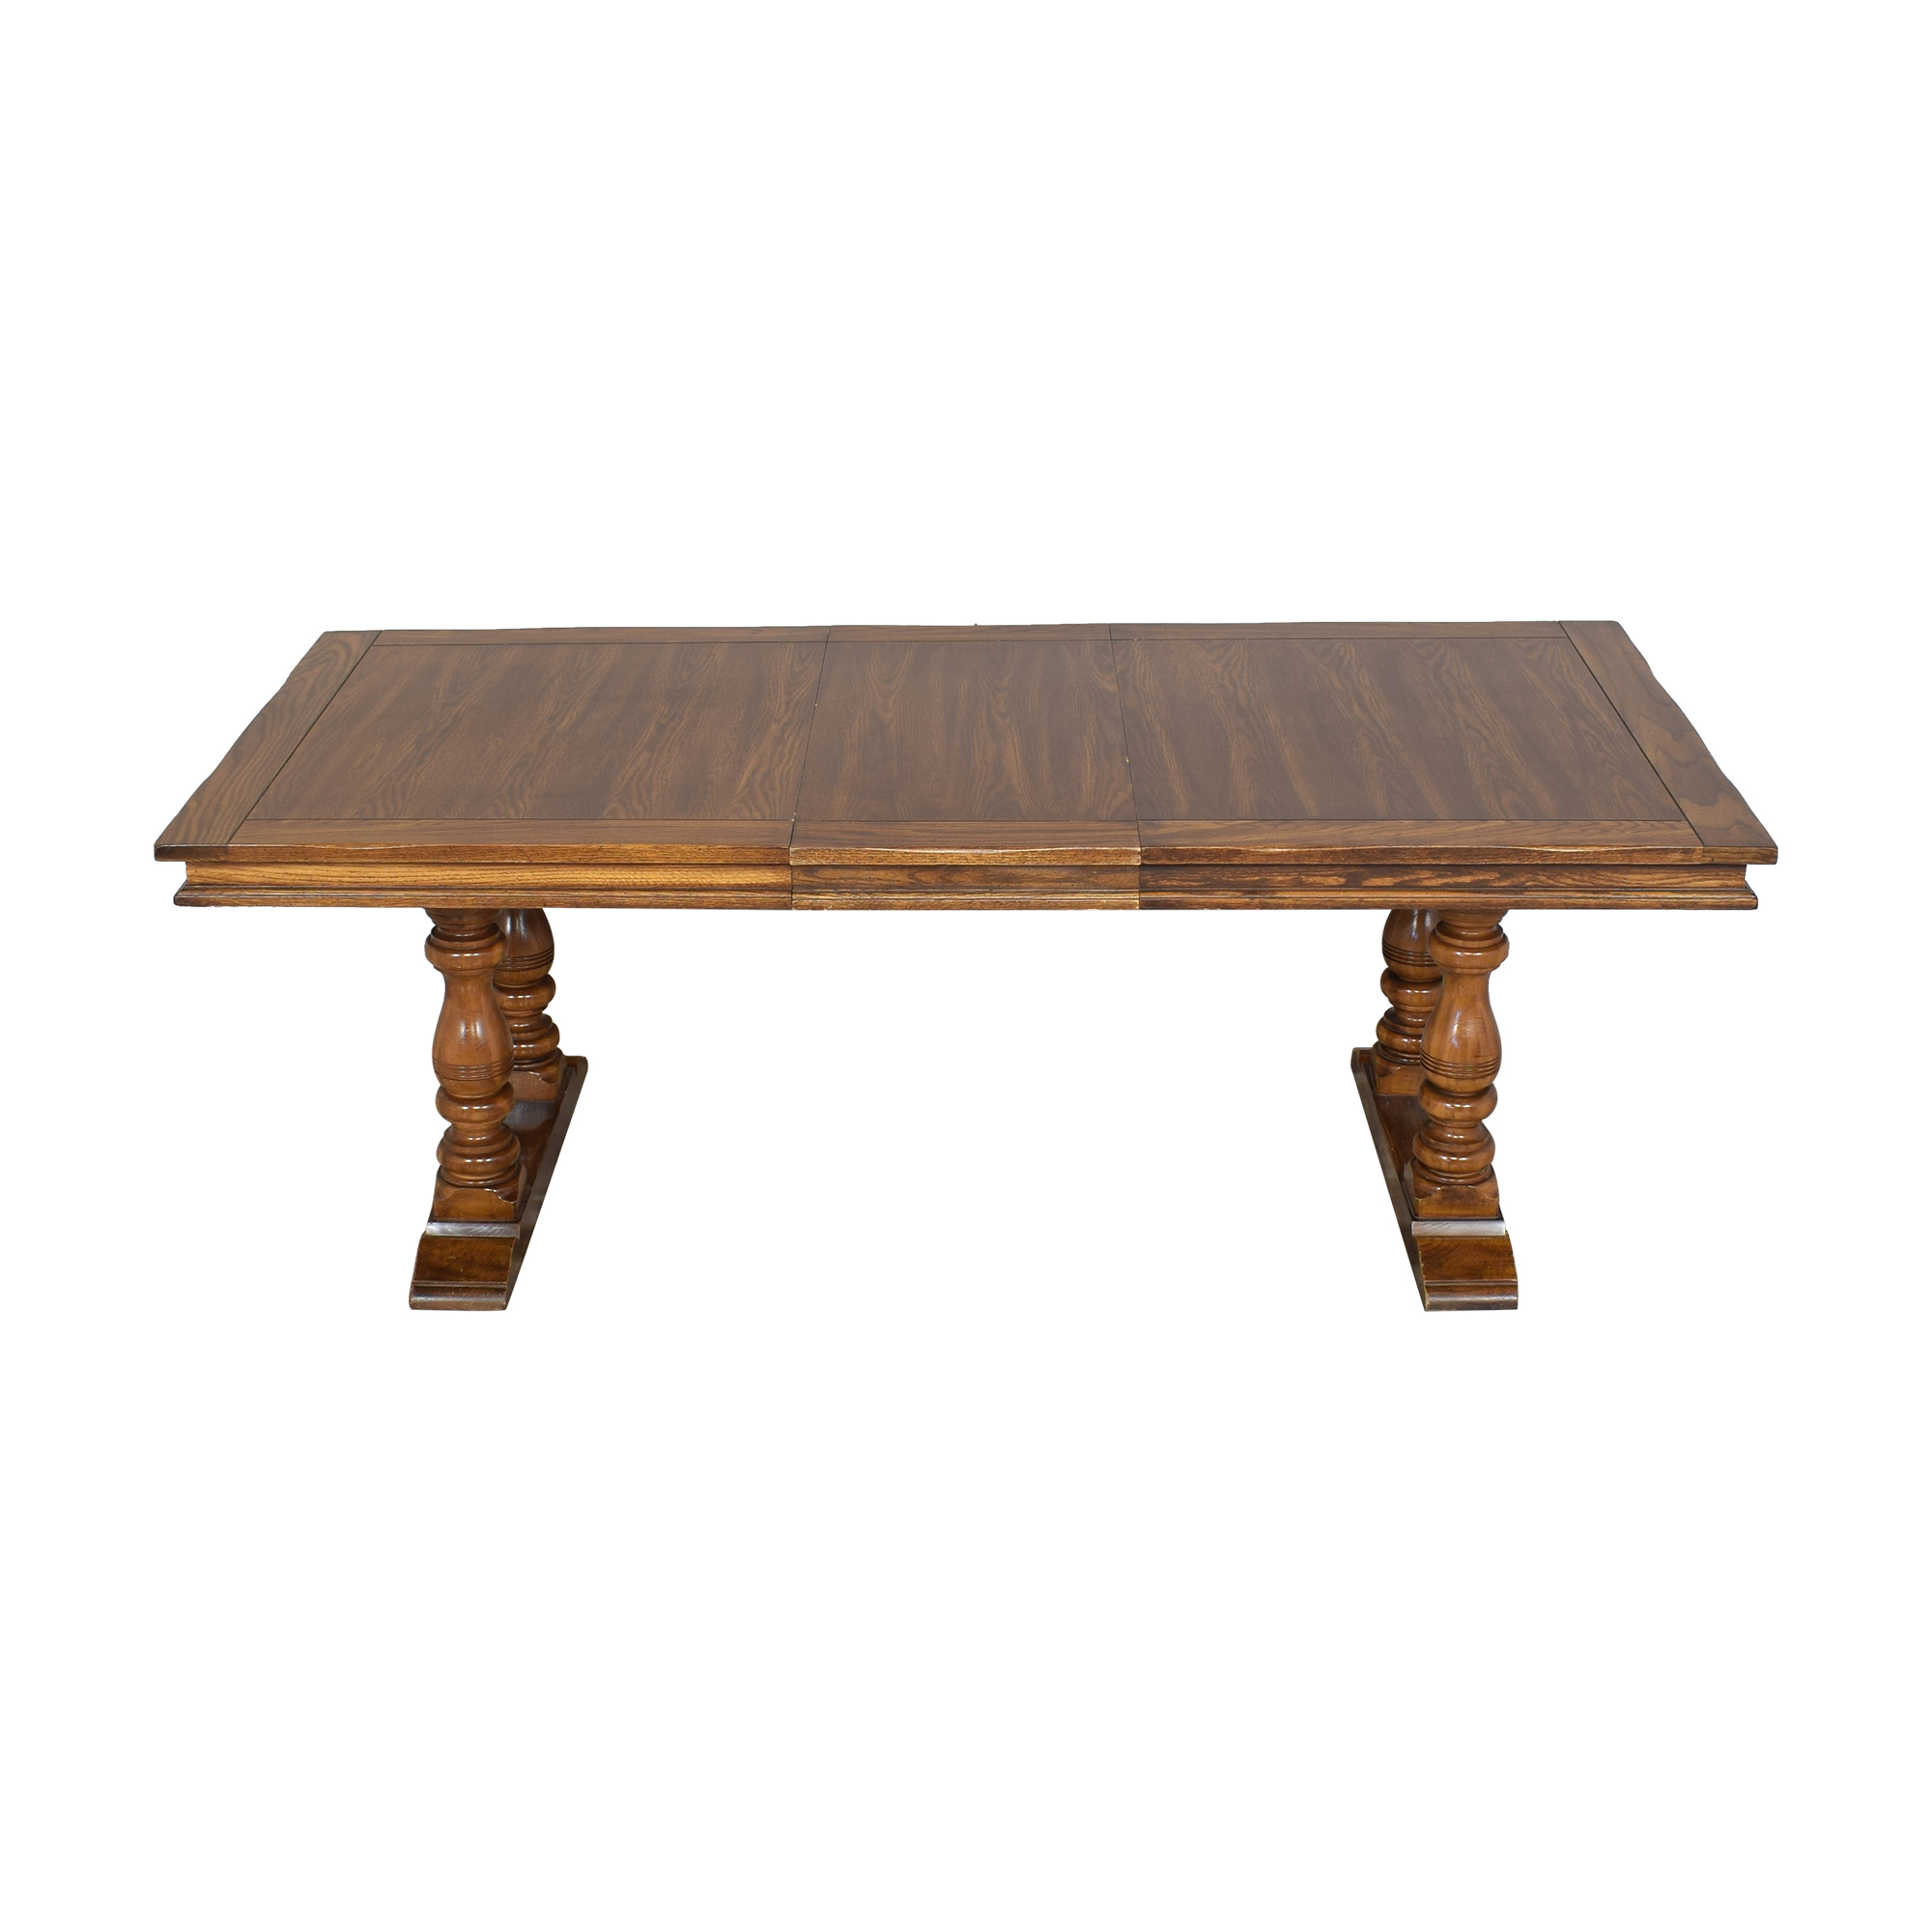 Rectangular Extendable Dining Table second hand